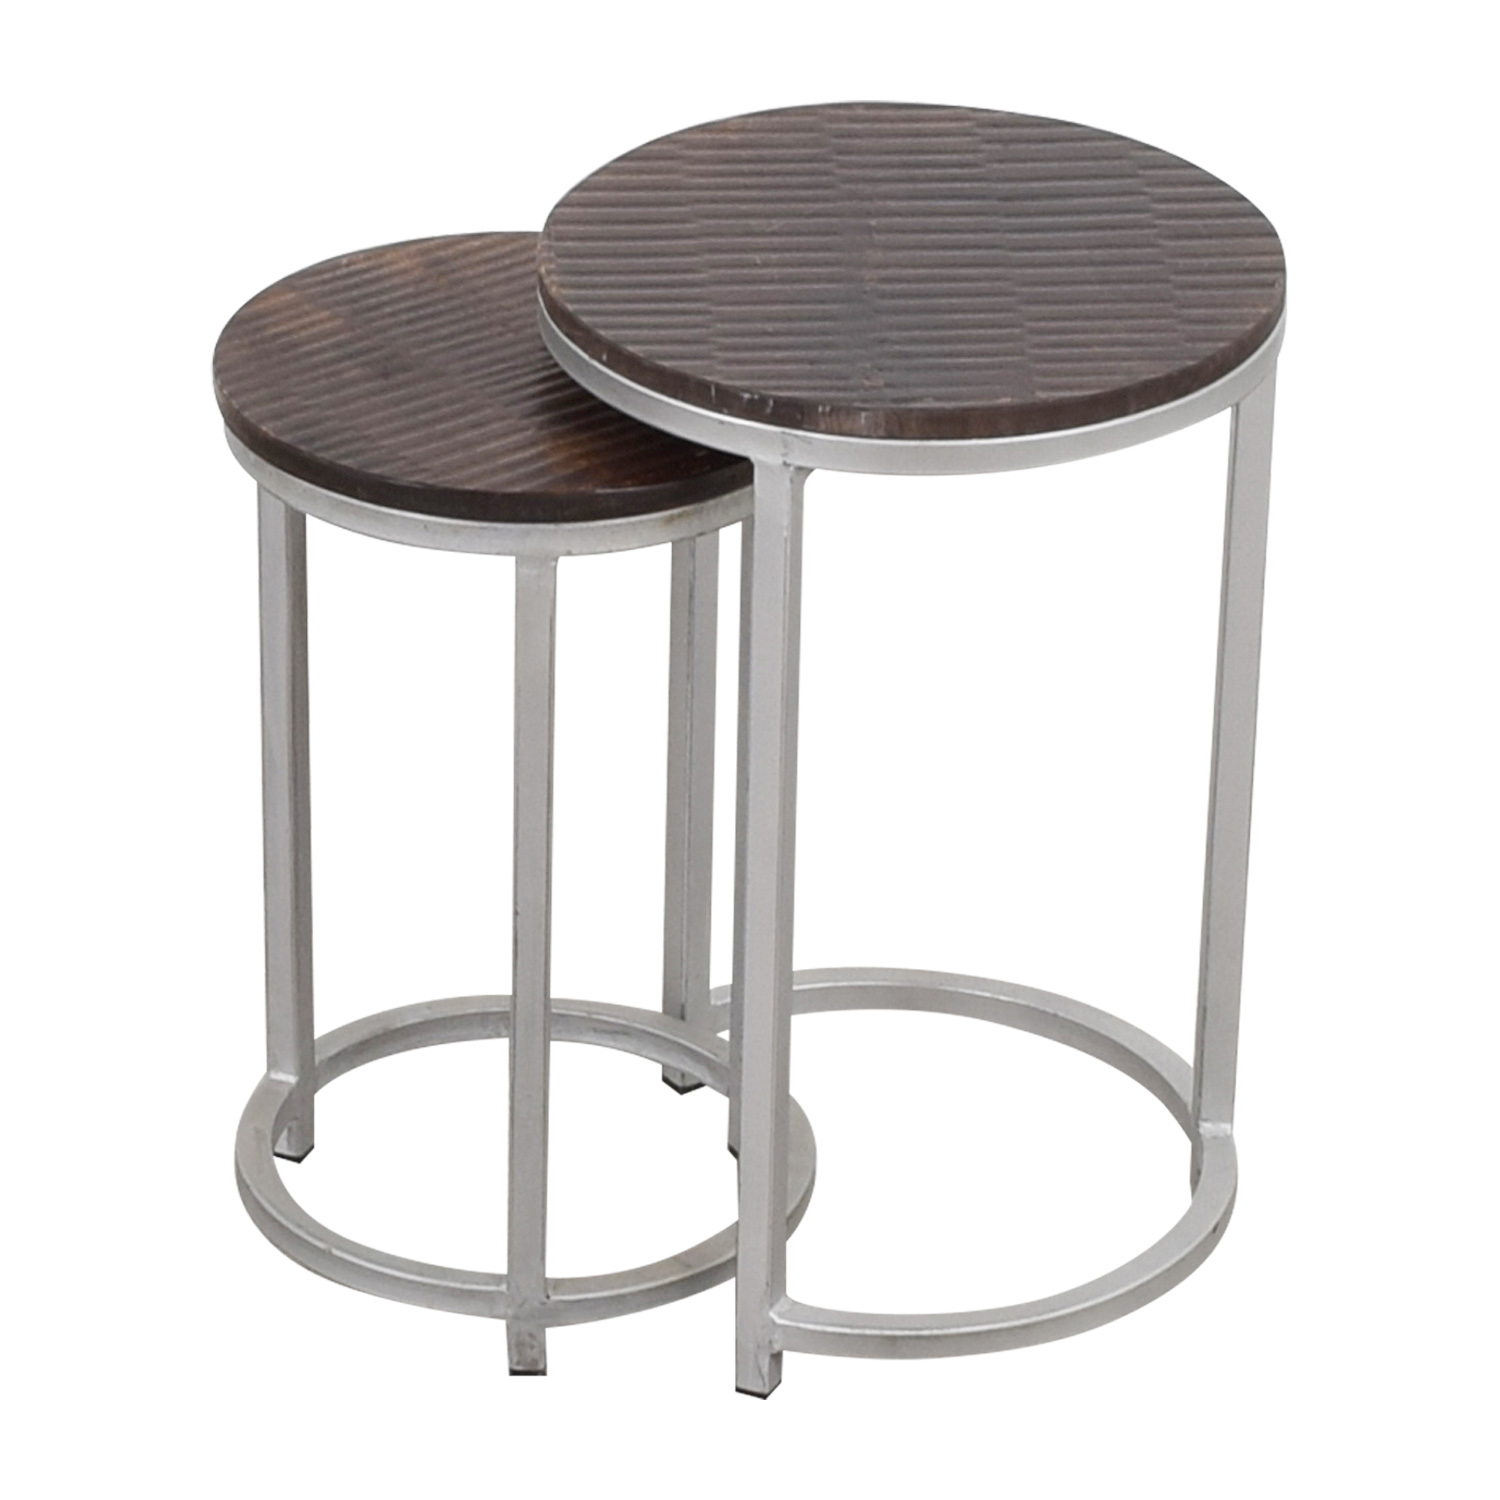 Round Nesting Side Tables for sale